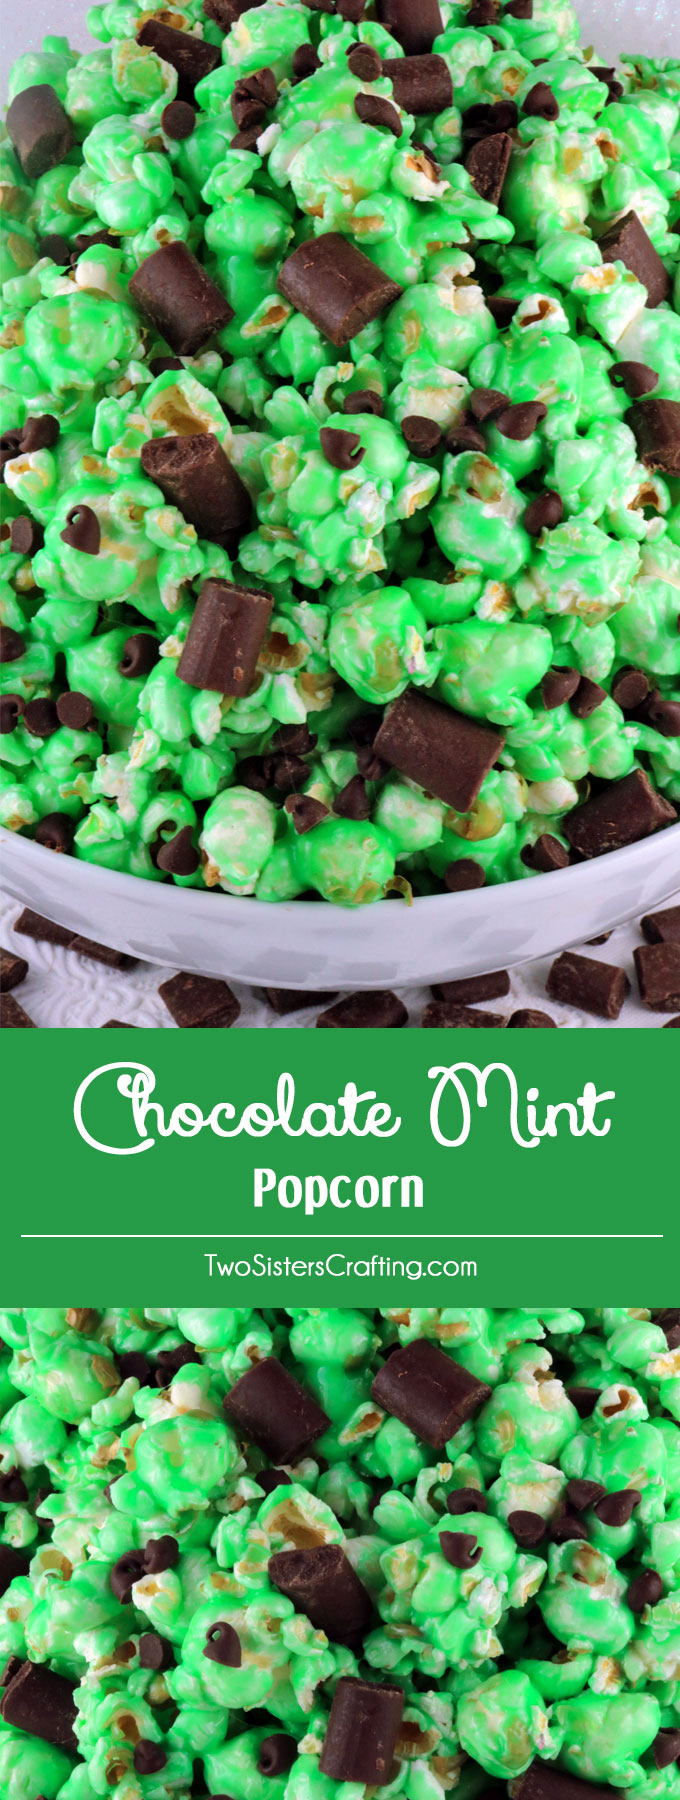 Chocolate Mint Popcorn - this sweet and salty popcorn covered in minty marshmallow and tossed with chocolate chips will be a big hit with your family. It is both fun and delicious, a great combination! A fun anytime snack that would also be a great treat for Family Movie Night. Pin this easy to make dessert for later and follow us for more great Popcorn Recipe Ideas.